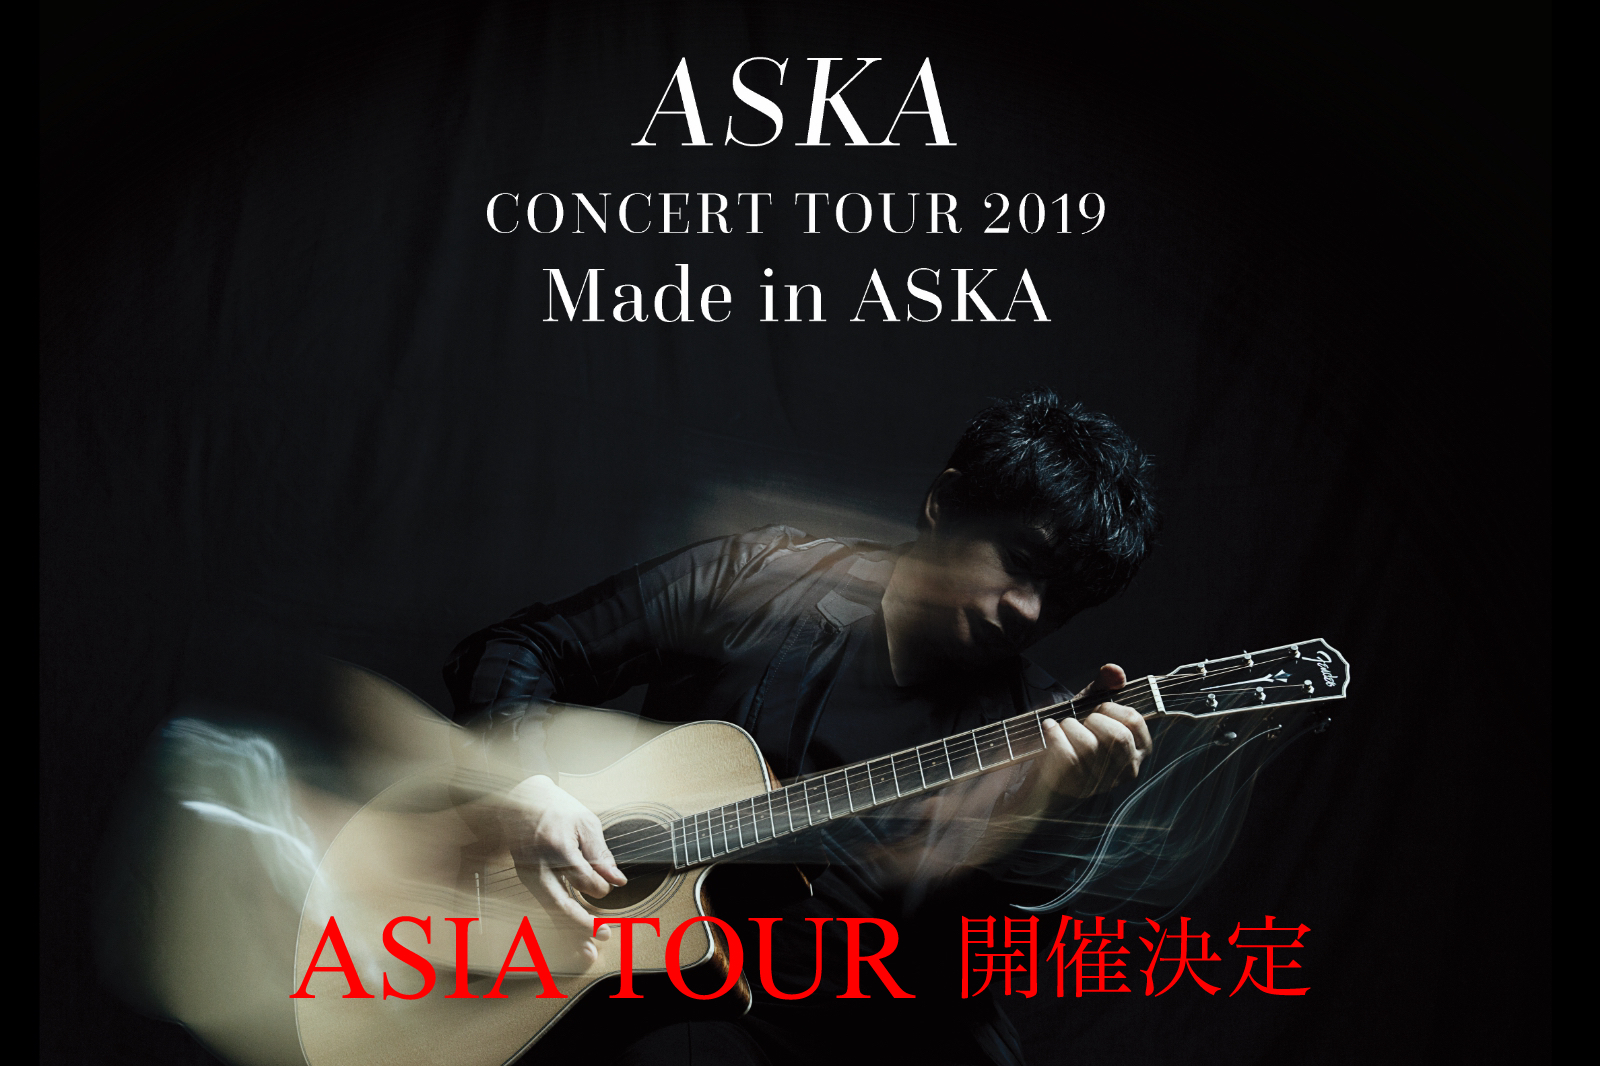 ASKA CONCERT TOUR 2019 Made in ASKA -ASIA TOUR-